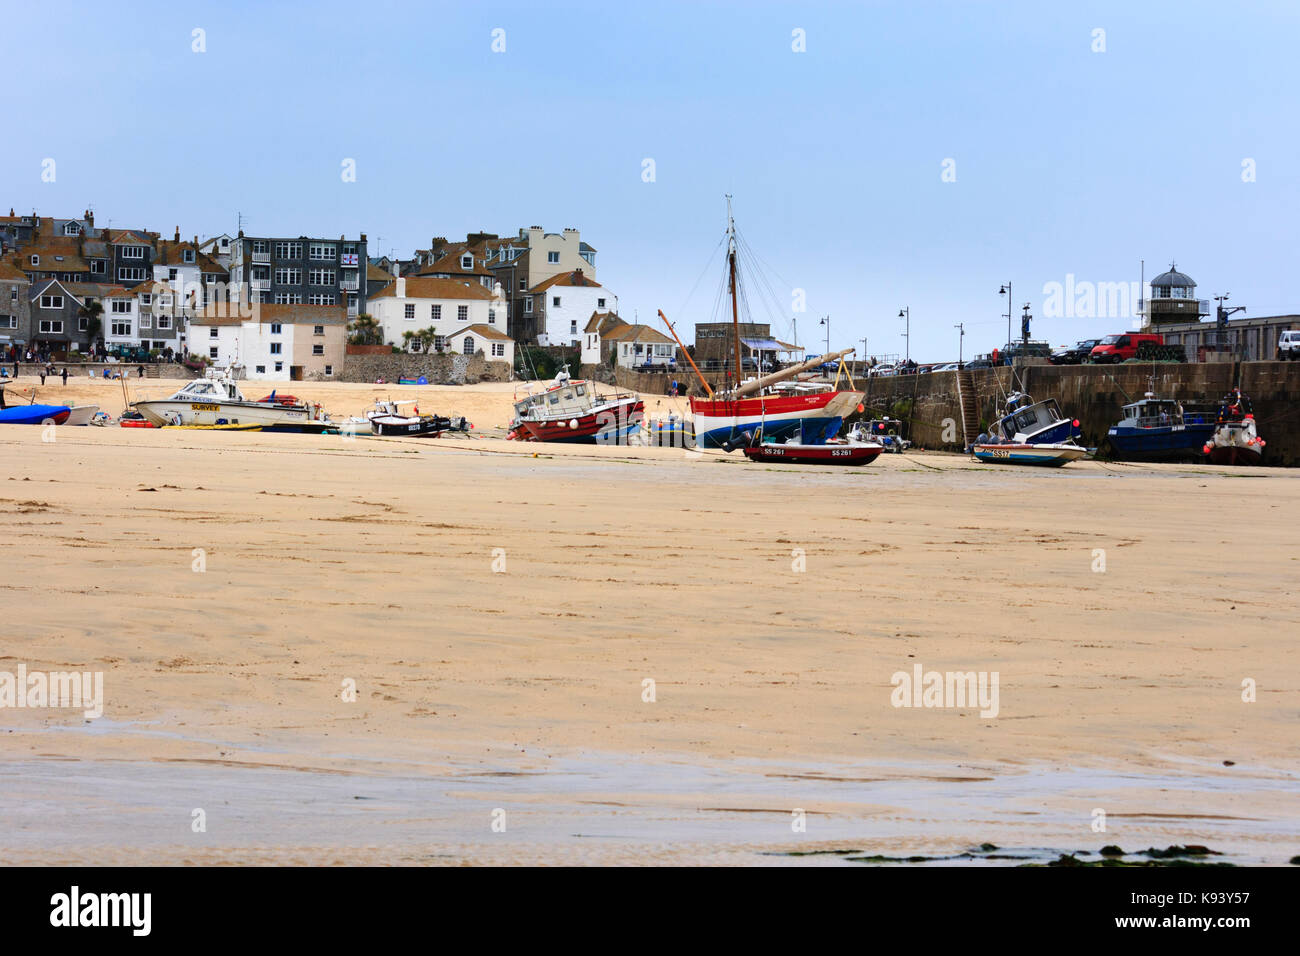 Fishing and pleasure boats beached on the strand at St Ives, Cornwall, at low tide - Stock Image